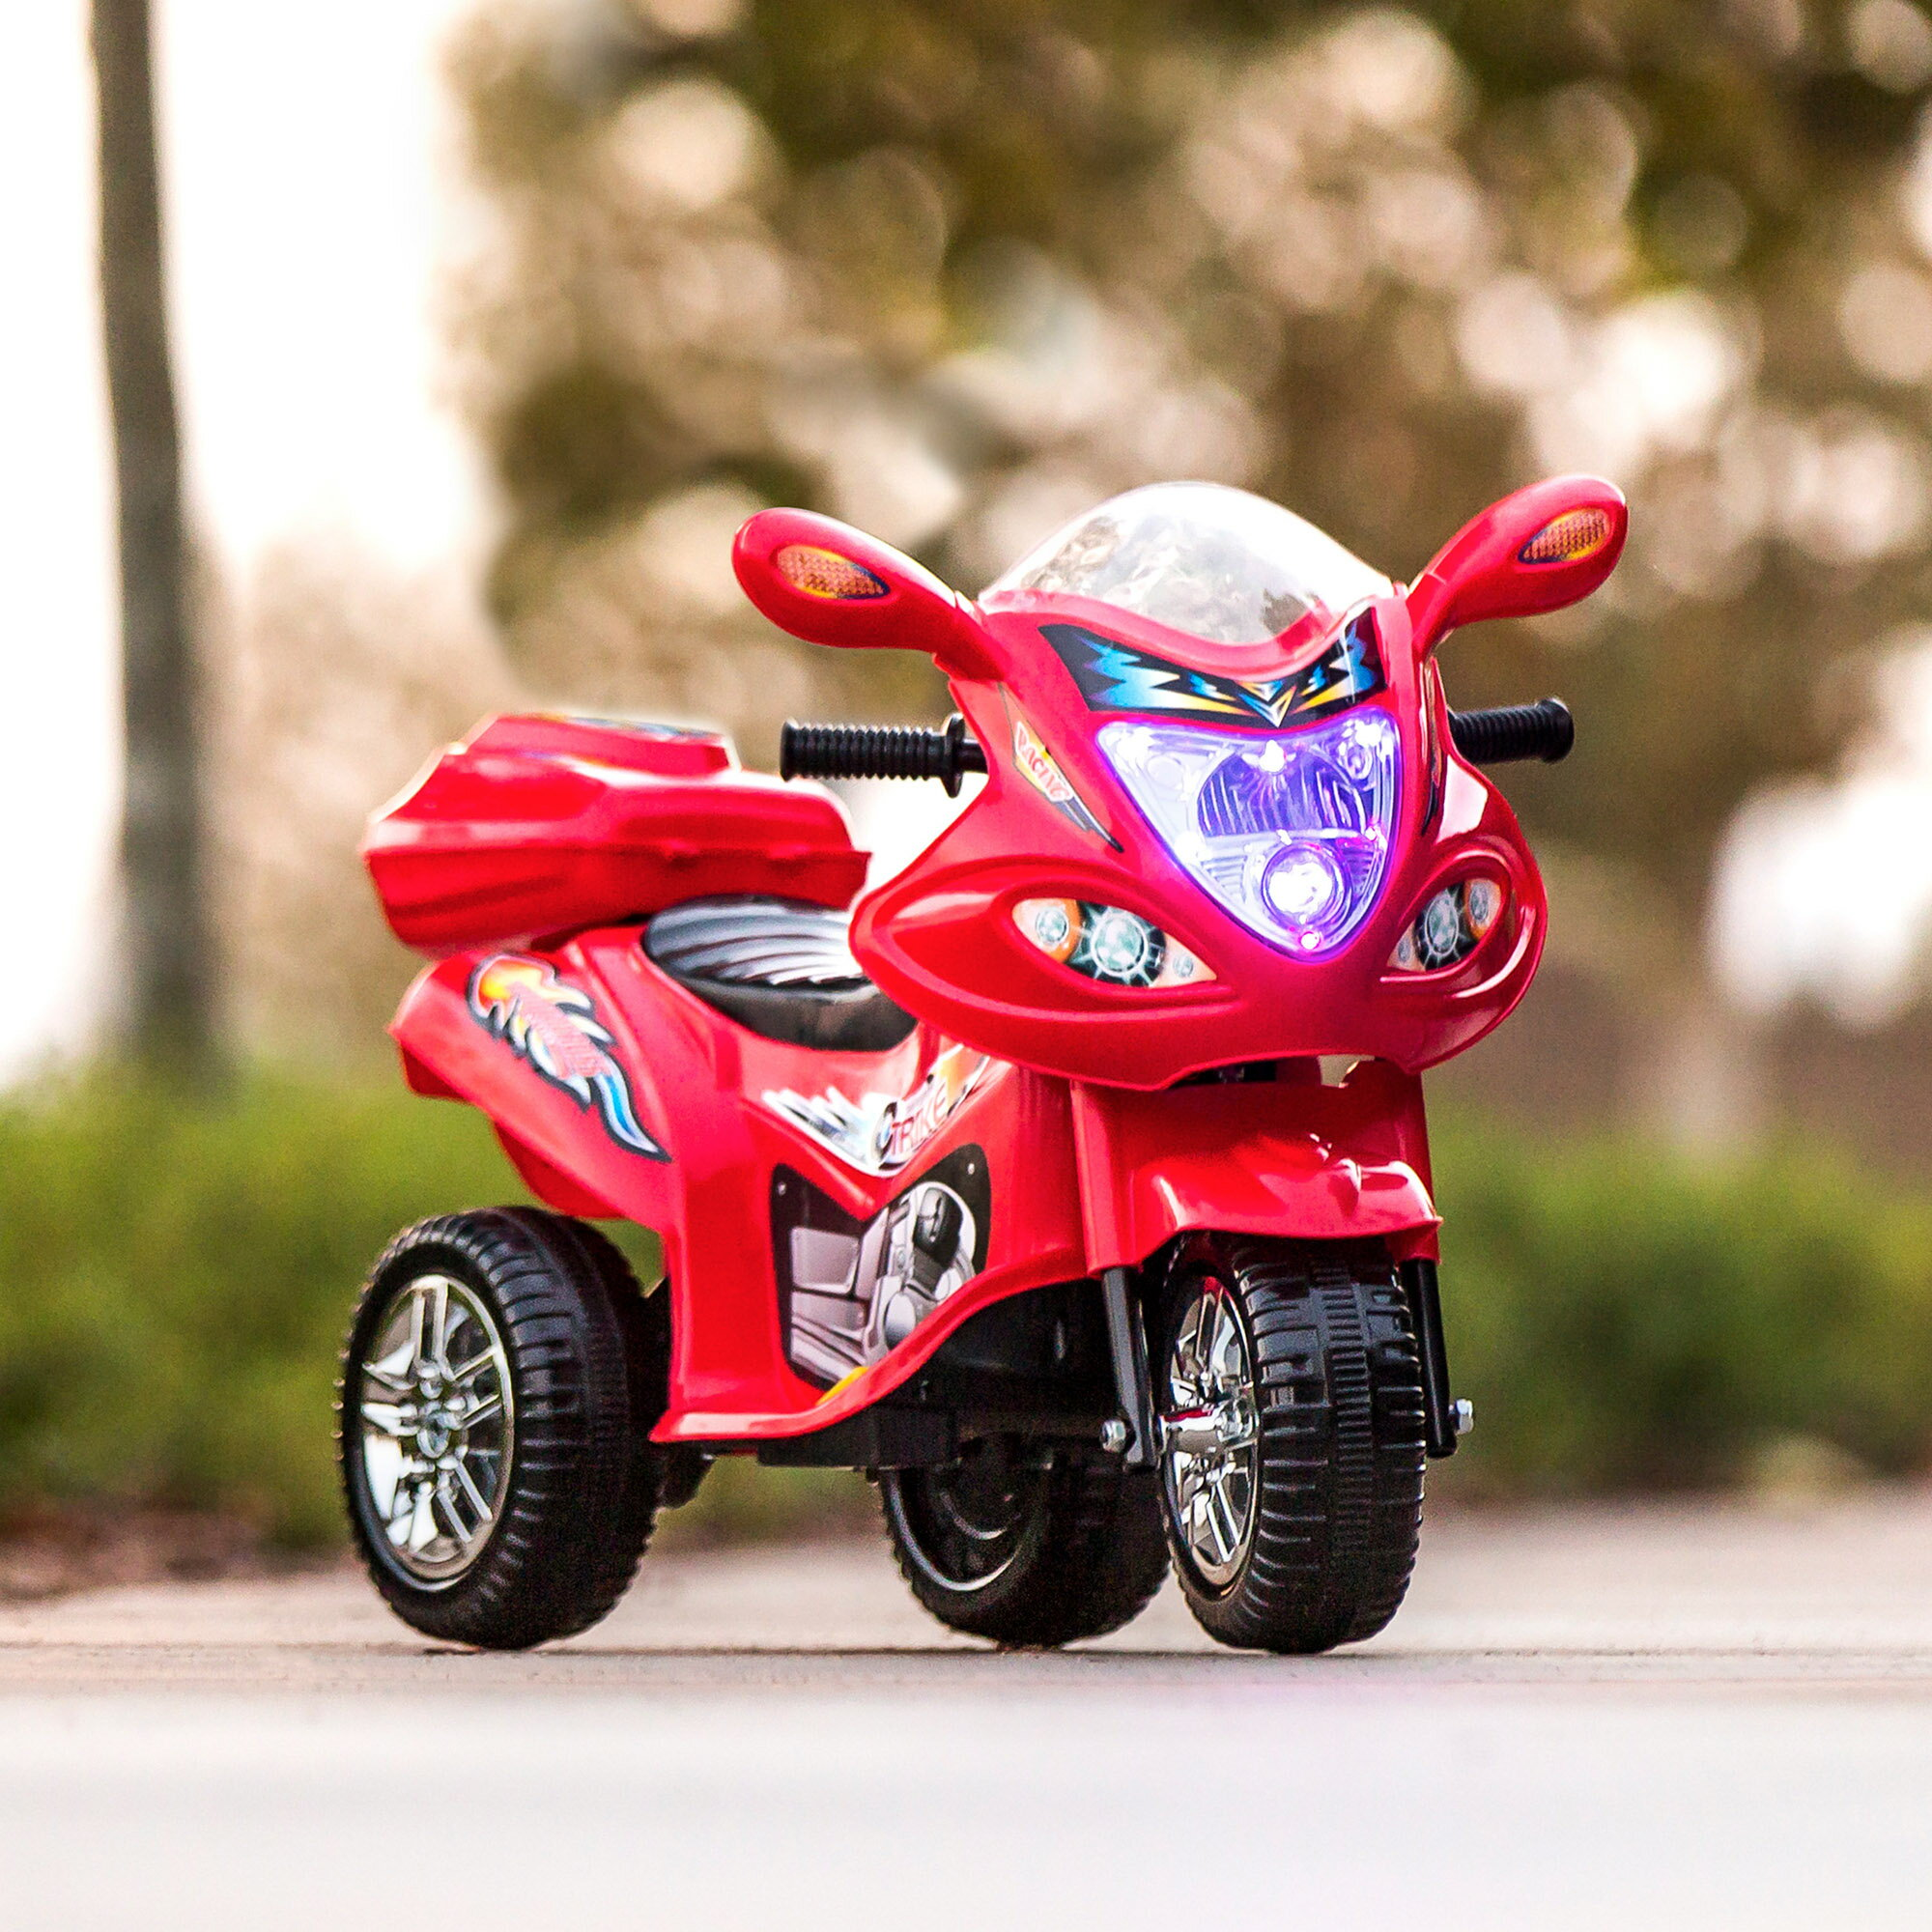 Best Choice Products 6V Kids Battery Powered 3-Wheel Motorcycle Ride-On Toy w/ LED Lights, Music, Horn, Storage - Red 1